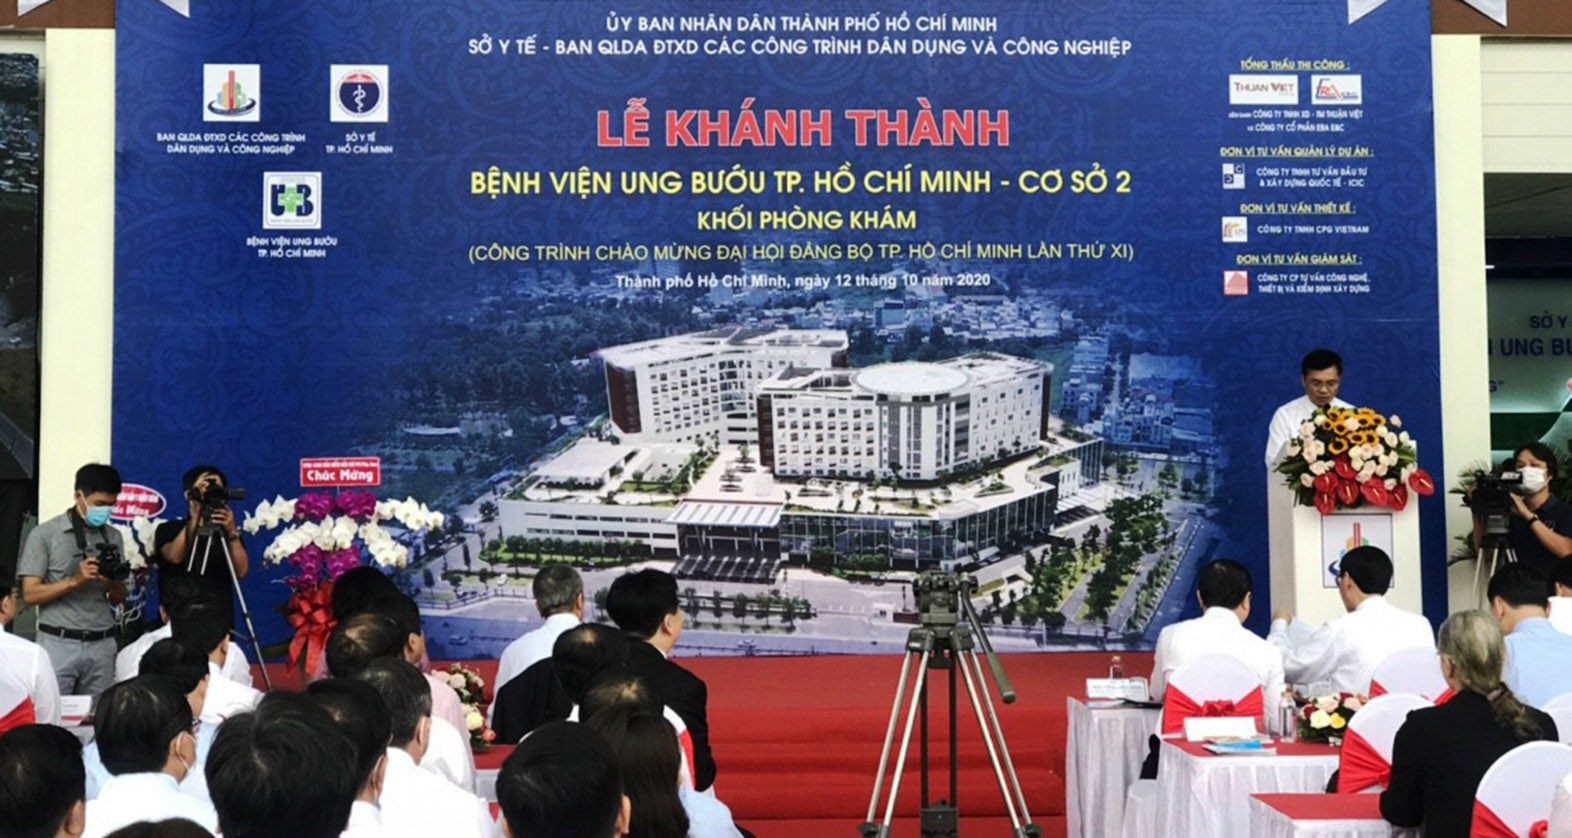 Grand Opening of HCMC Oncology Hospital (2nd branch) with 1.000 beds